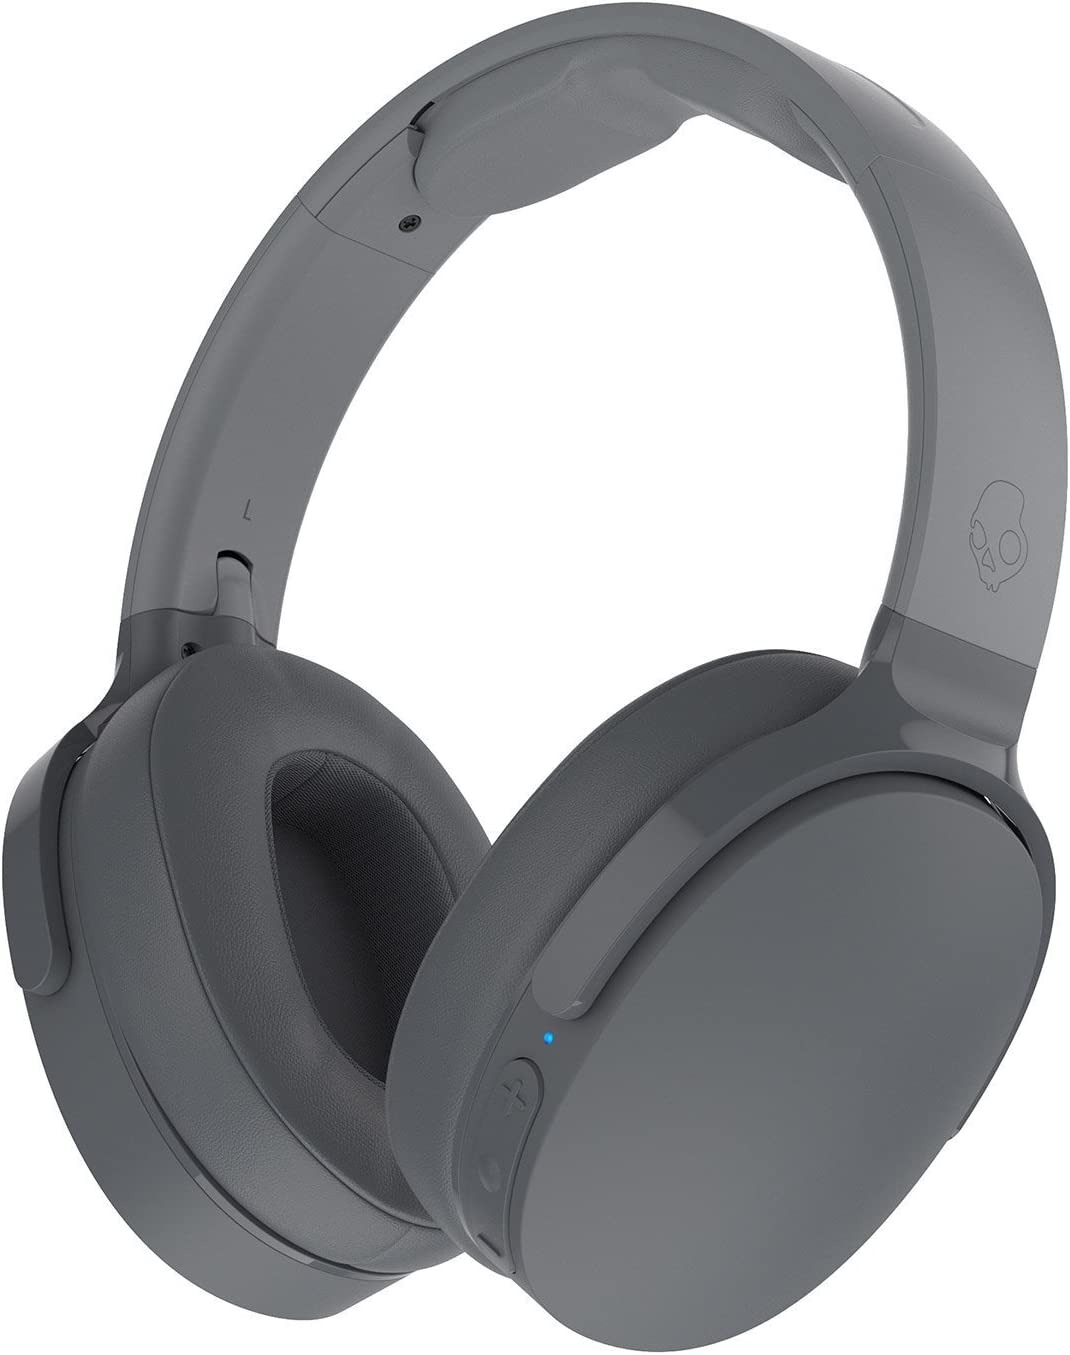 Auriculares Bluetooth Skullcandy Hesh 3 Over-Ear por 44,49€